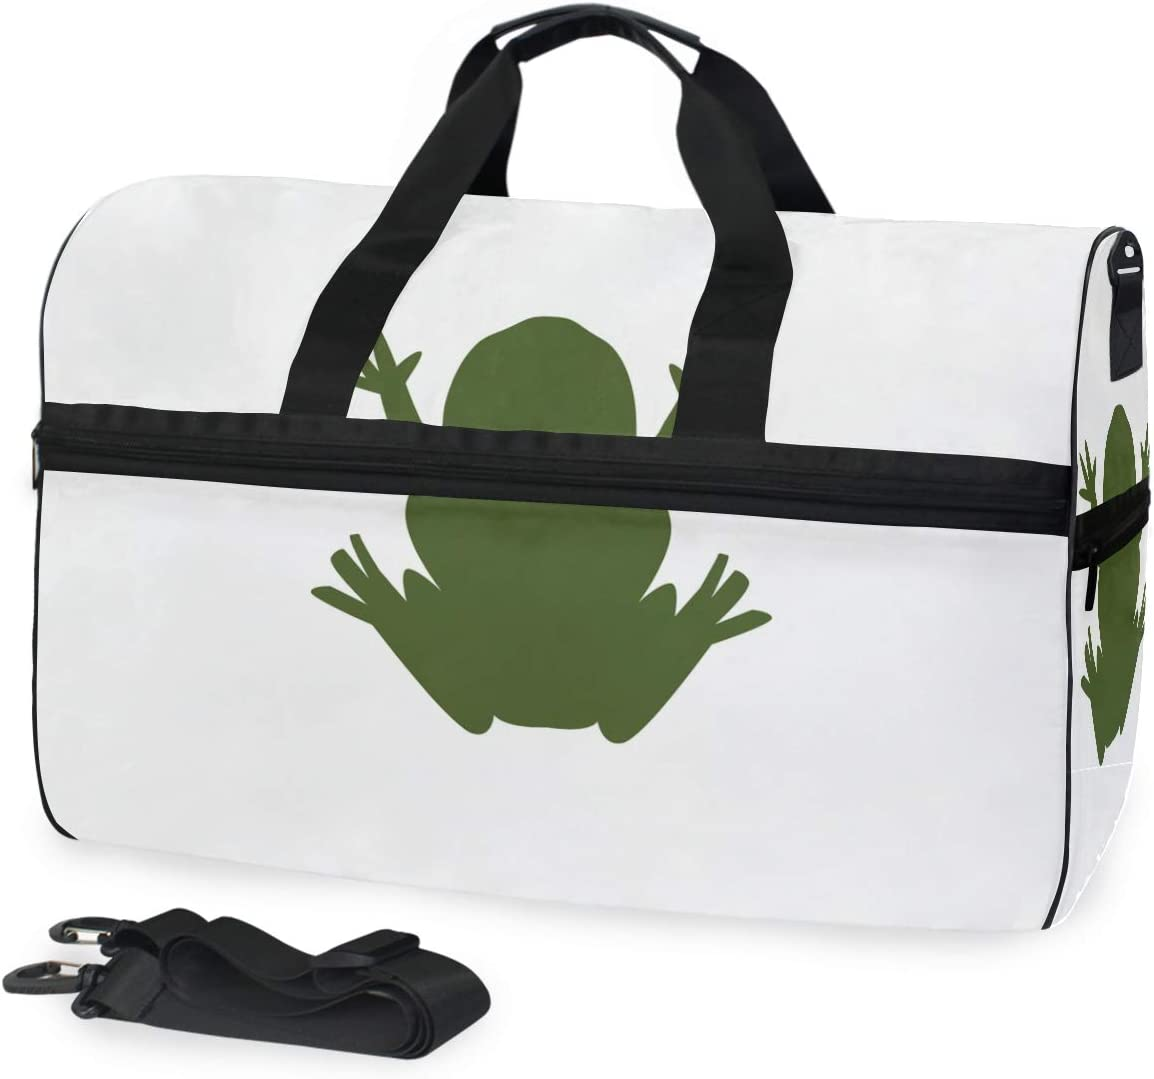 FAJRO Duffle Bag for Women Men Fat Frog Travel Duffel Bag Large Size Water-proof Tear Resistant